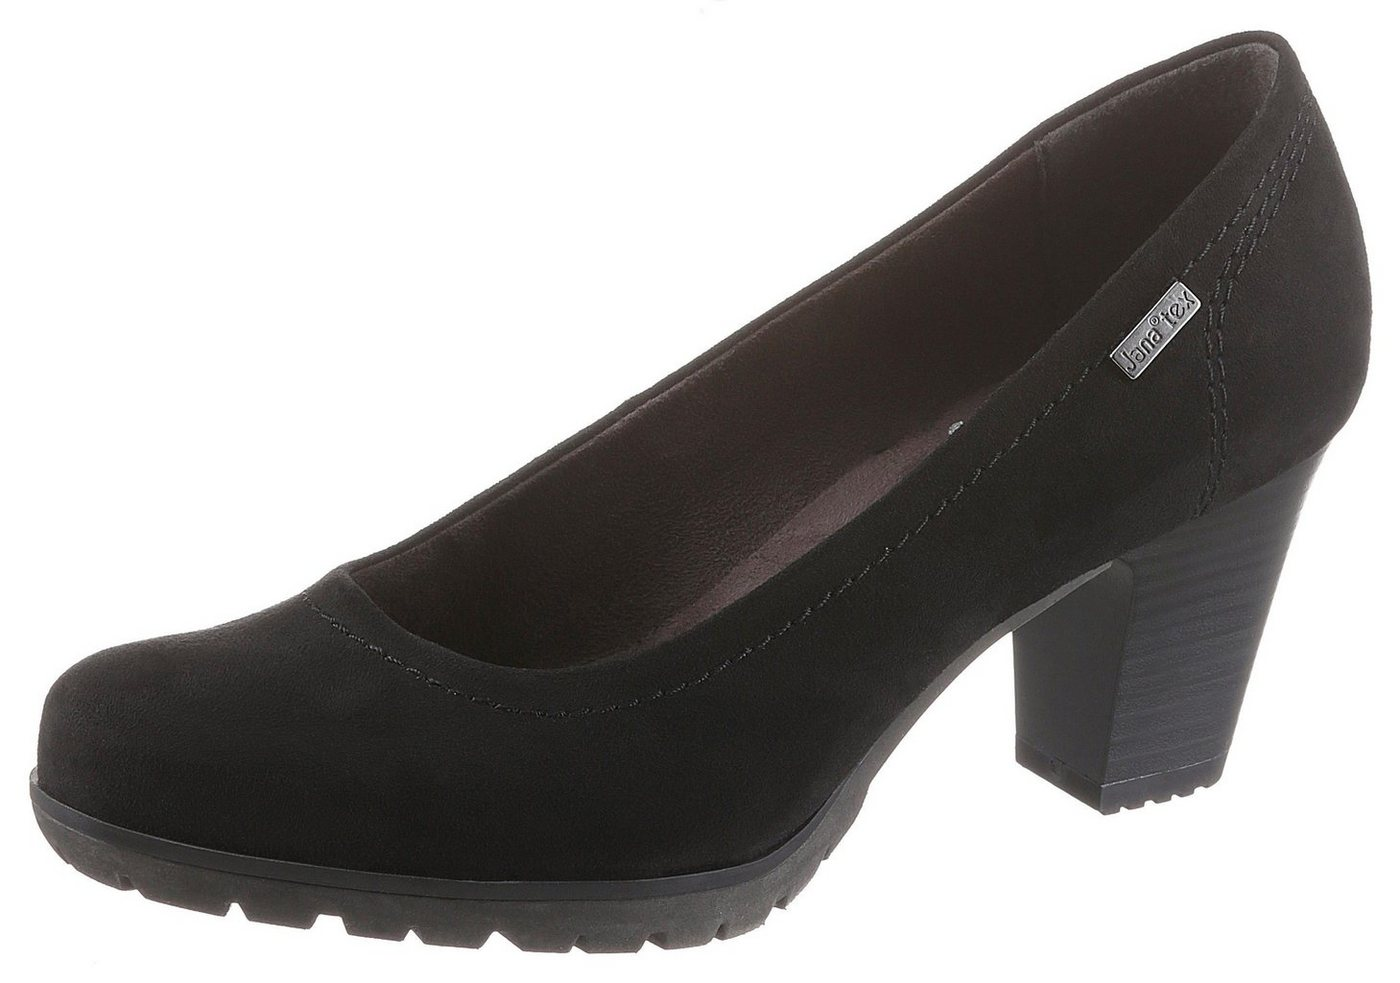 Damen Jana Pumps mit TEX-Membran schwarz  Damen Pumps